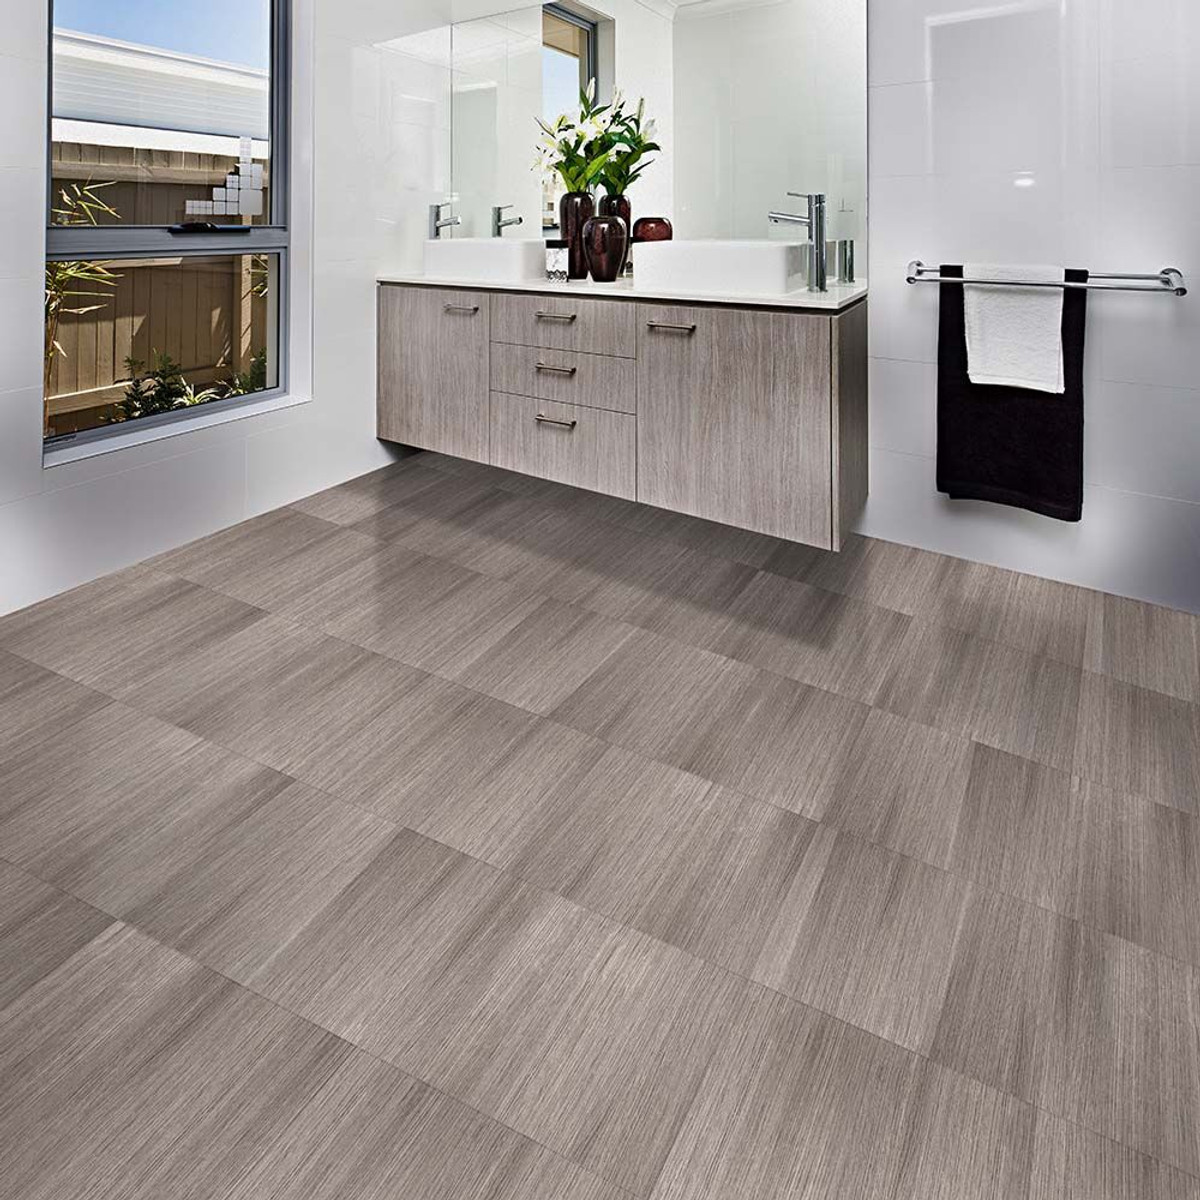 floor piece tile gray floors vinyl travertine luxury x perfection pattern in pd shop locking